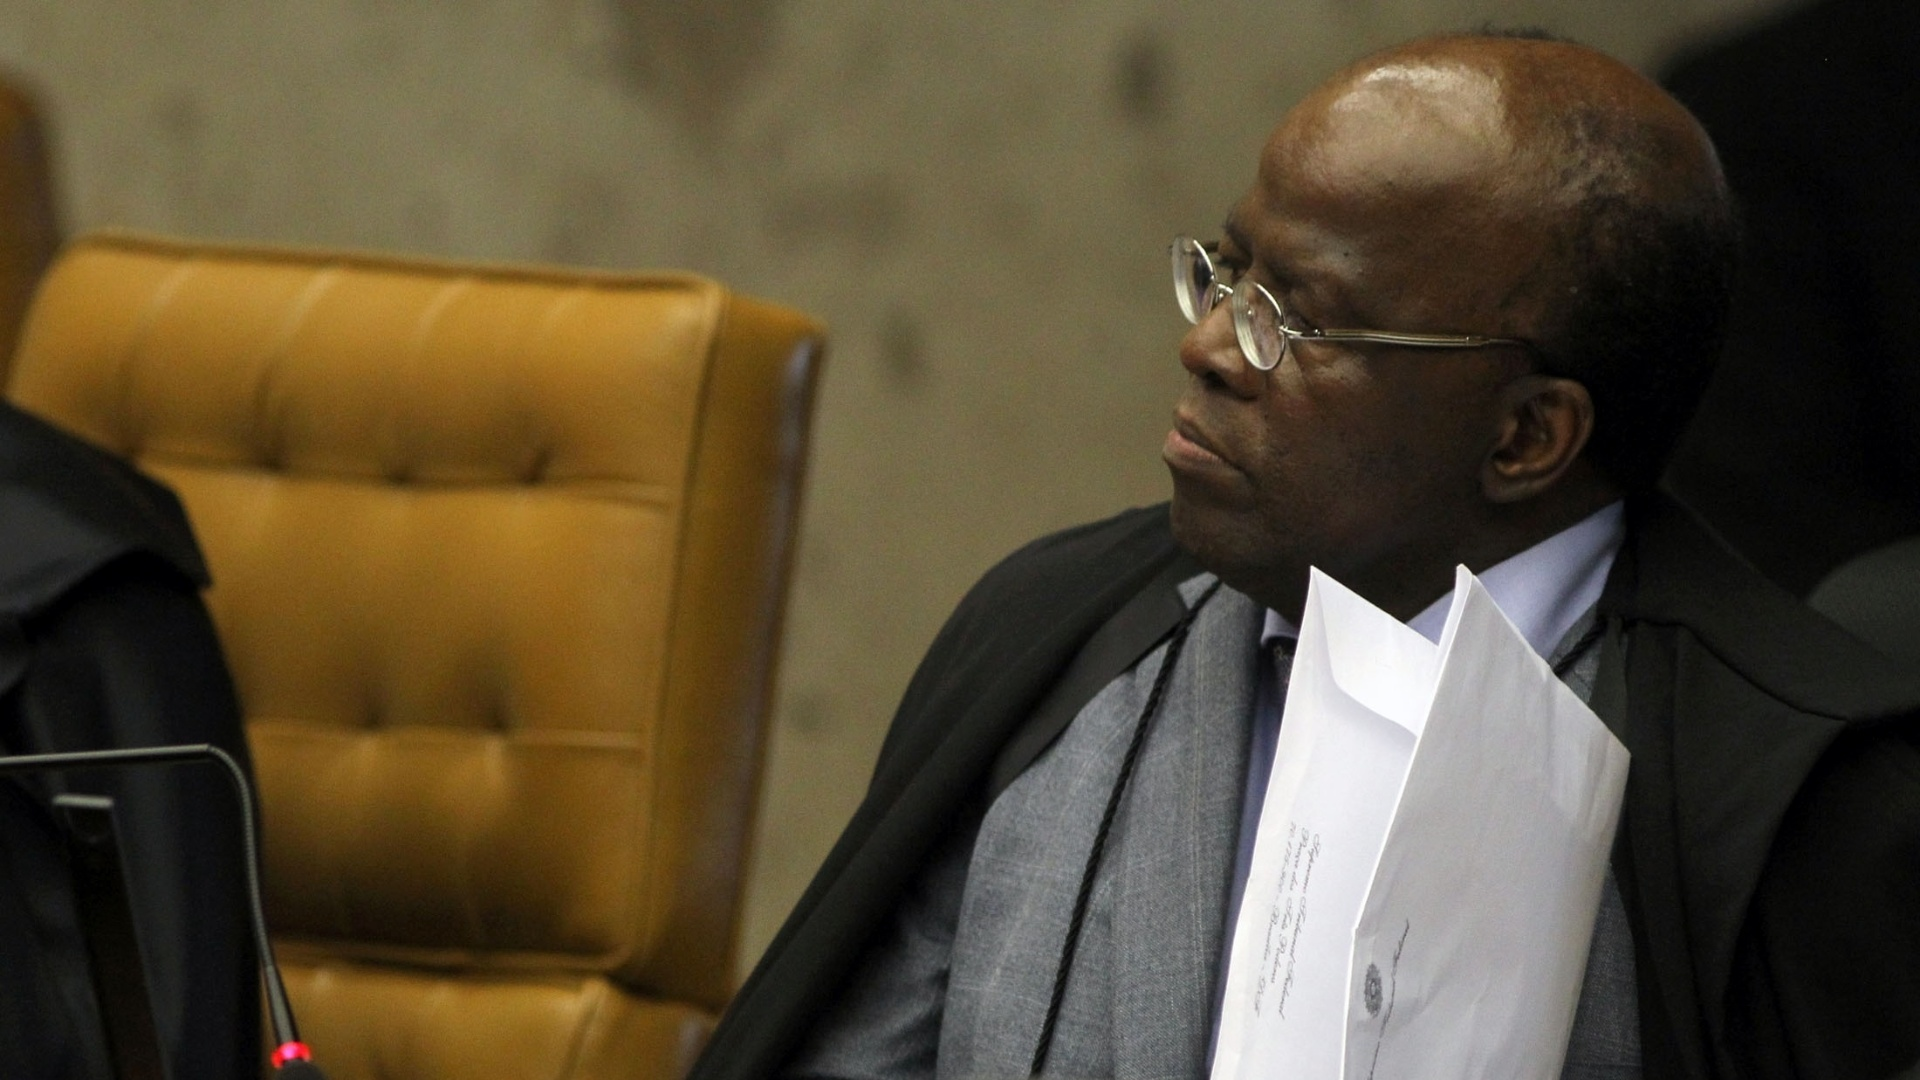 14.nov.2012 - O ministro-relator do processo do mensalo, Joaquim Barbosa, participa de sesso no STF, em Braslia. O ex-vice-presidente do Banco Rural Jos Roberto Salgado foi condenado pelo STF a 16 anos e 8 meses de priso e multa de R$ 926.400 pelos crimes de formao de quadrilha, lavagem de dinheiro, evaso de divisas e gesto fraudulenta